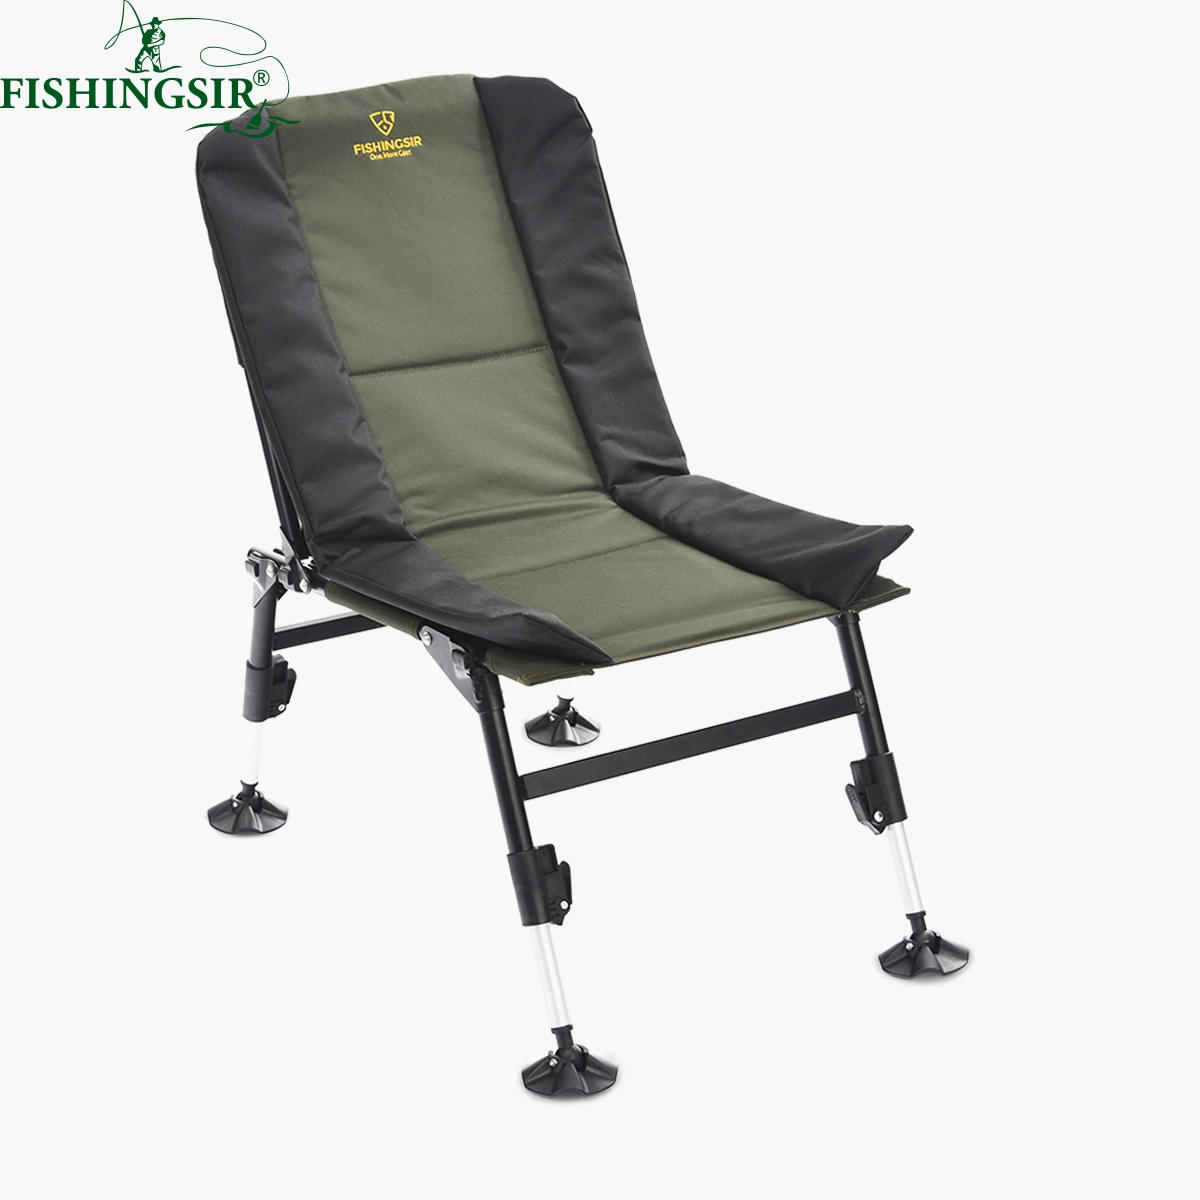 fishing chair amazon revolving images outdoor portable ultimate breathable folding picnic